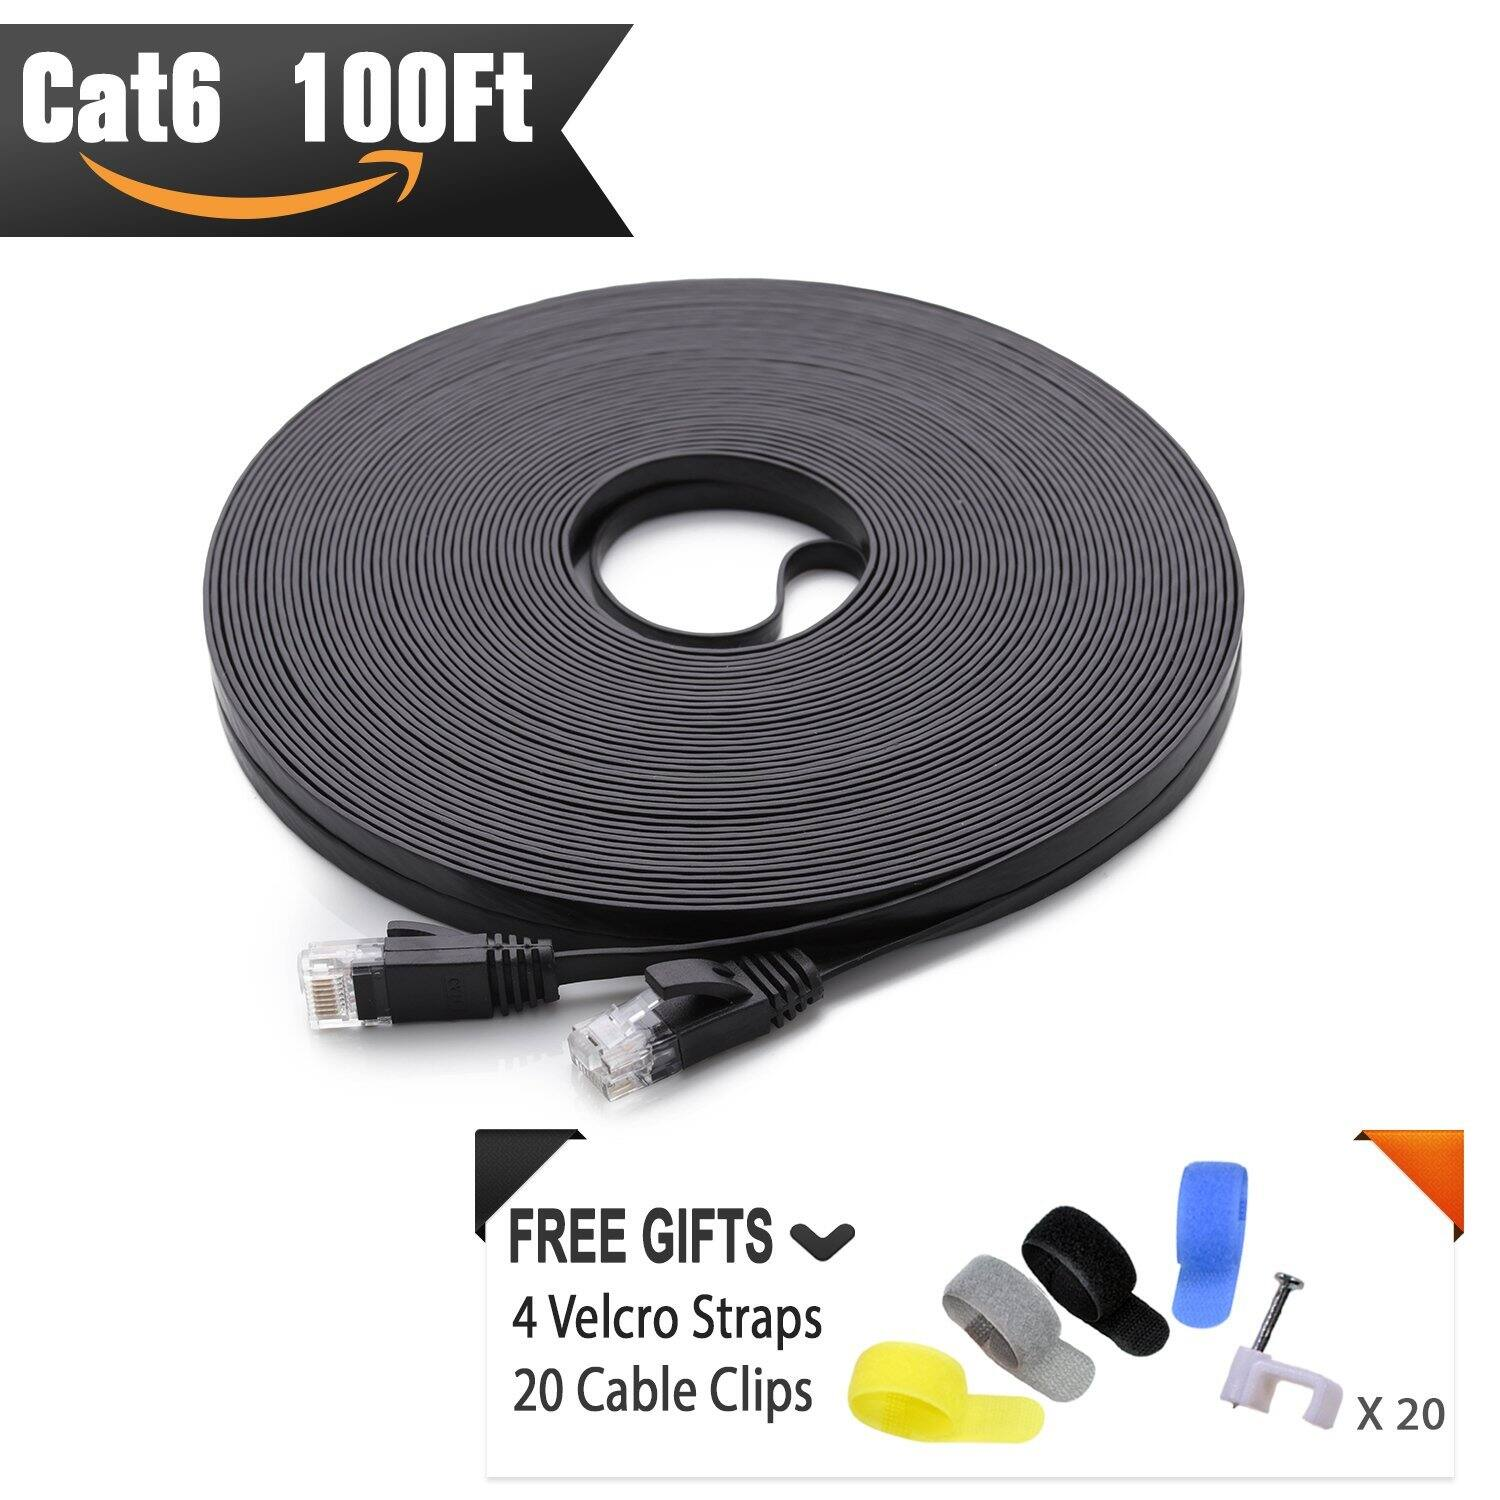 Cat6 Flat cable 100ft with Snagless RJ45 Connectors $9.54 AC + FS with Prime